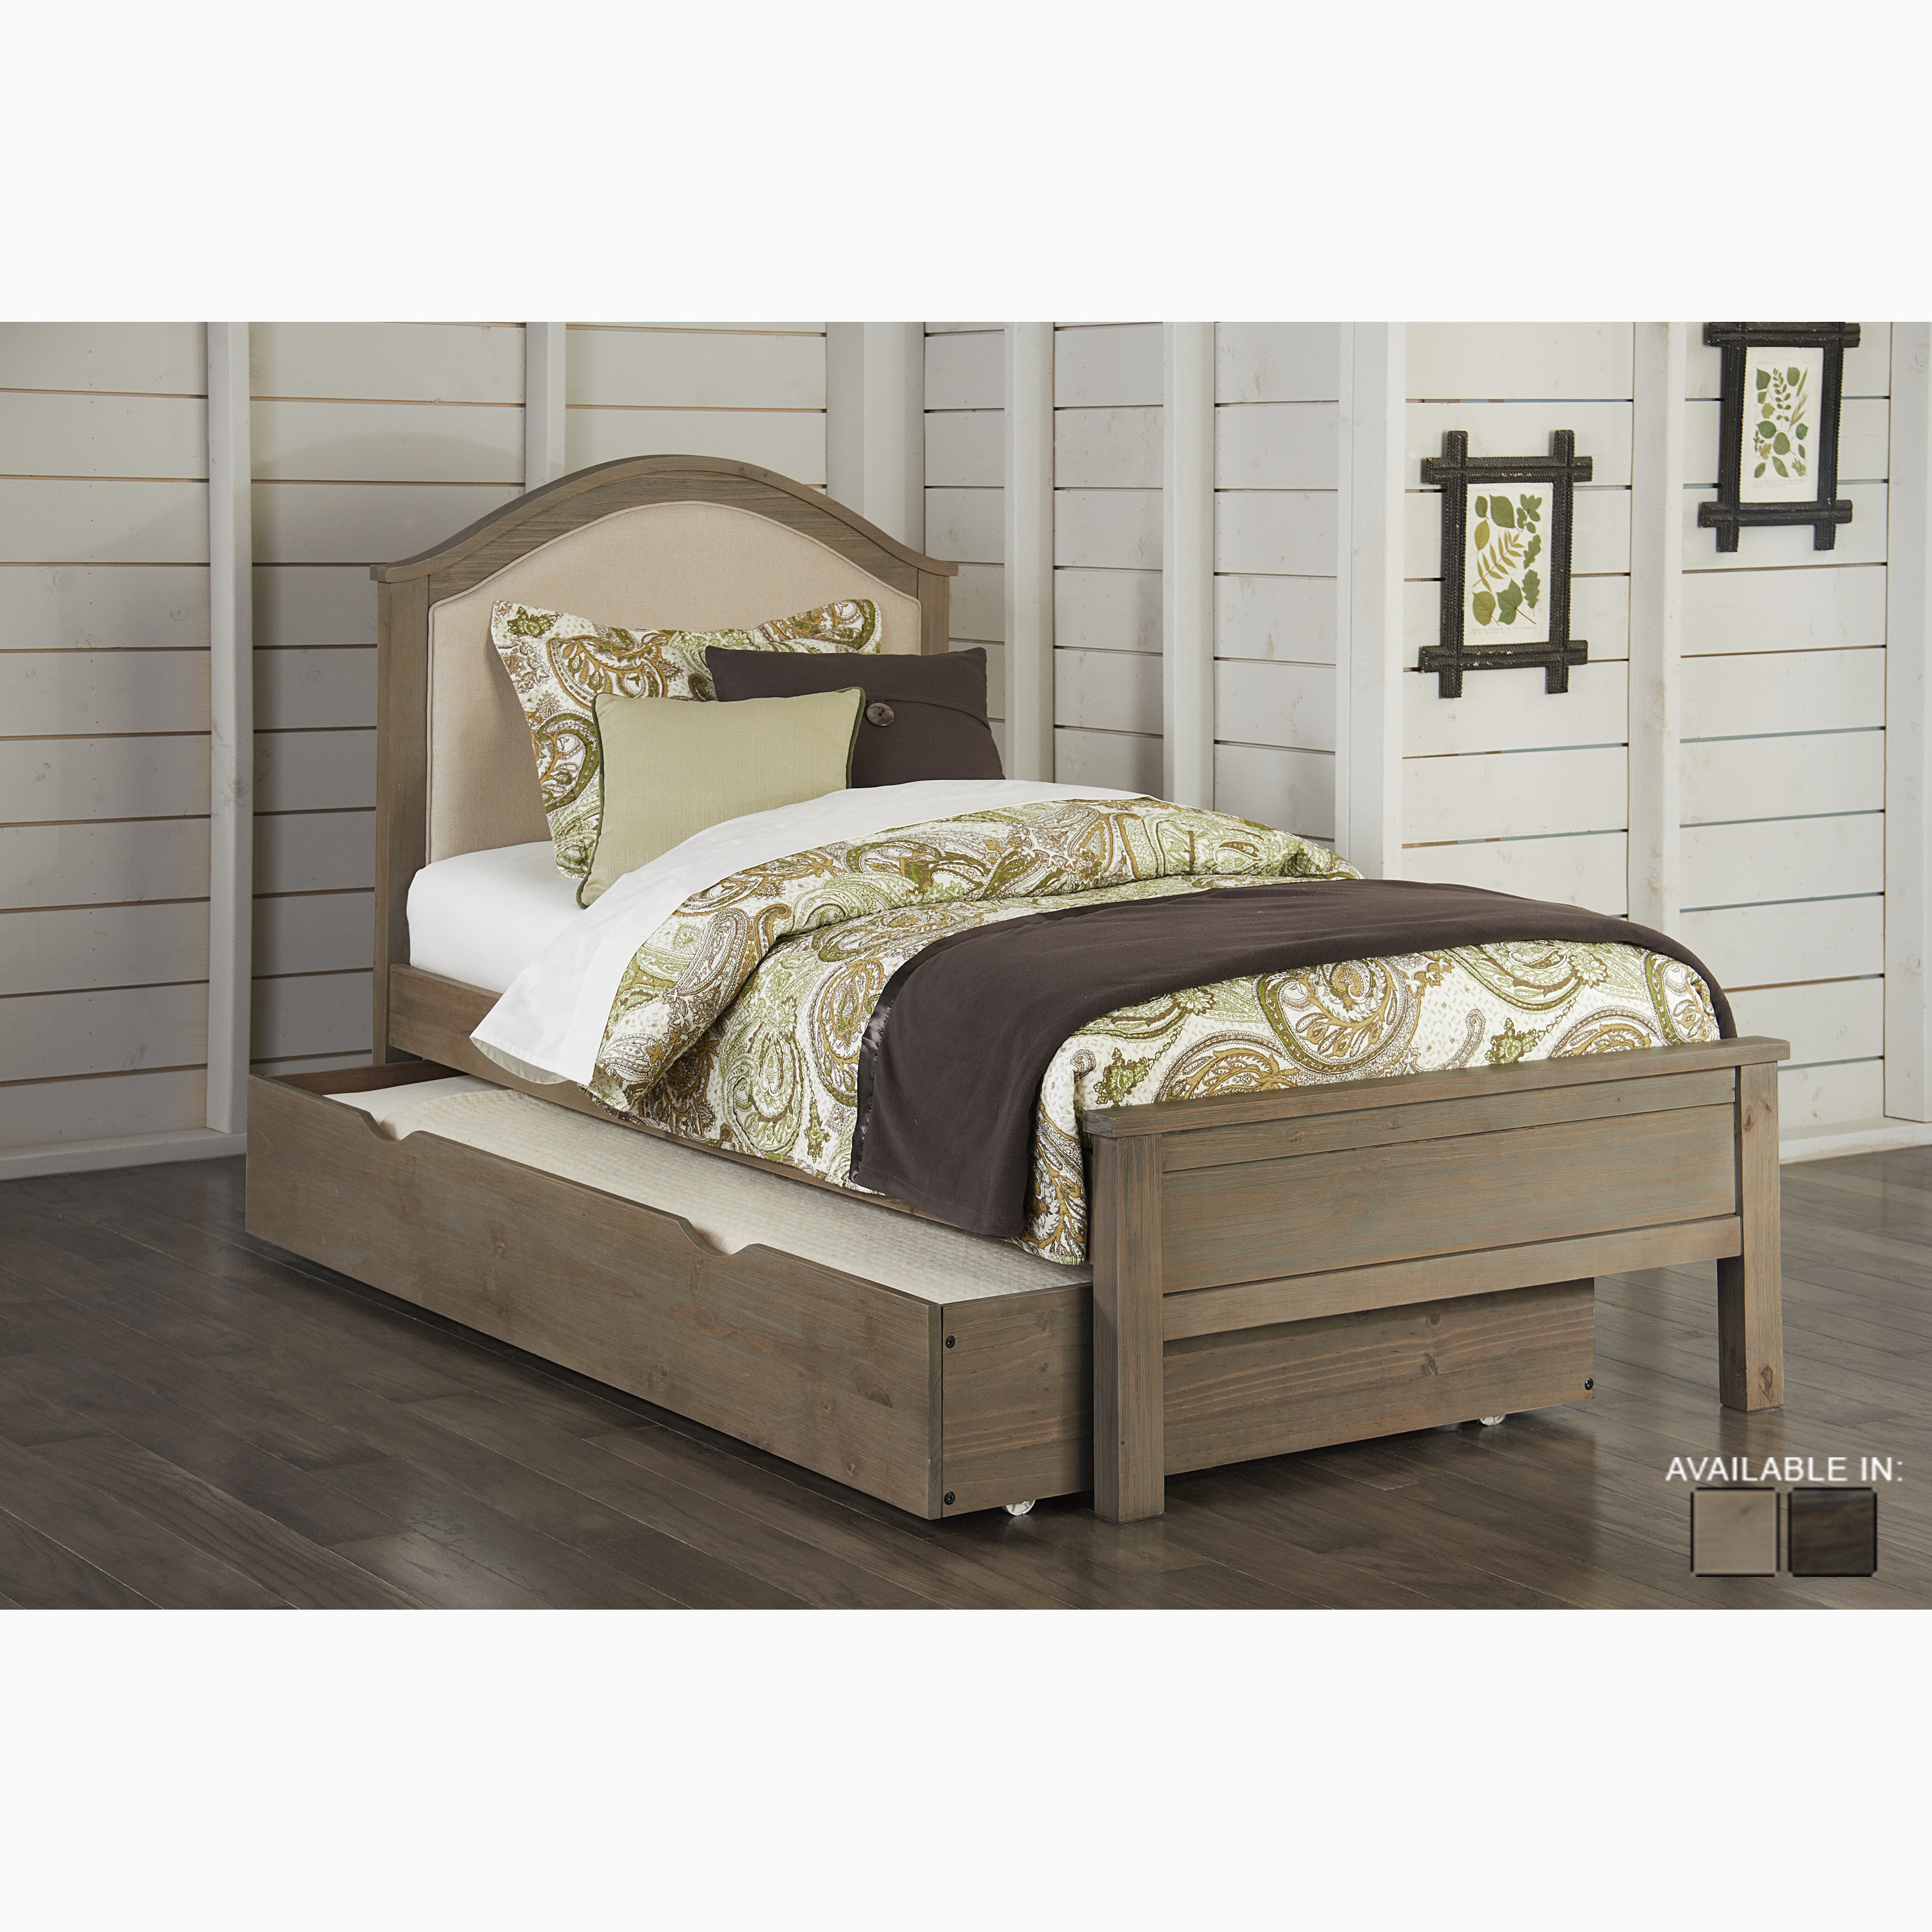 Highlands Collection Driftwood Trundle Bed - Free Shipping Today ...